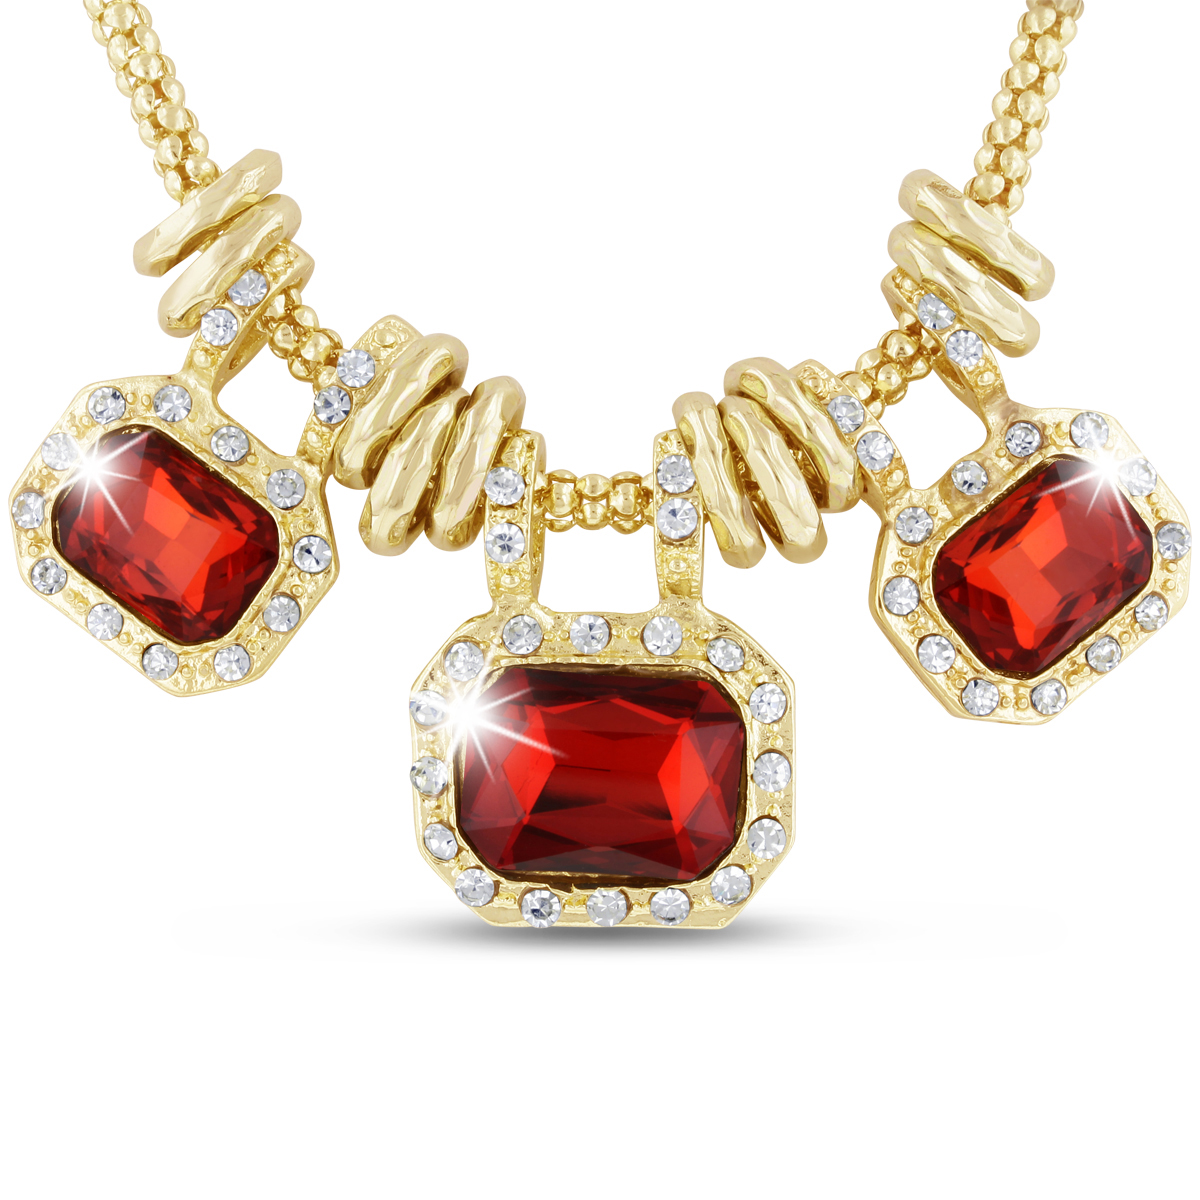 18 Karat Gold Plated Ruby Red Glass And Crystal Statement Necklace, 18